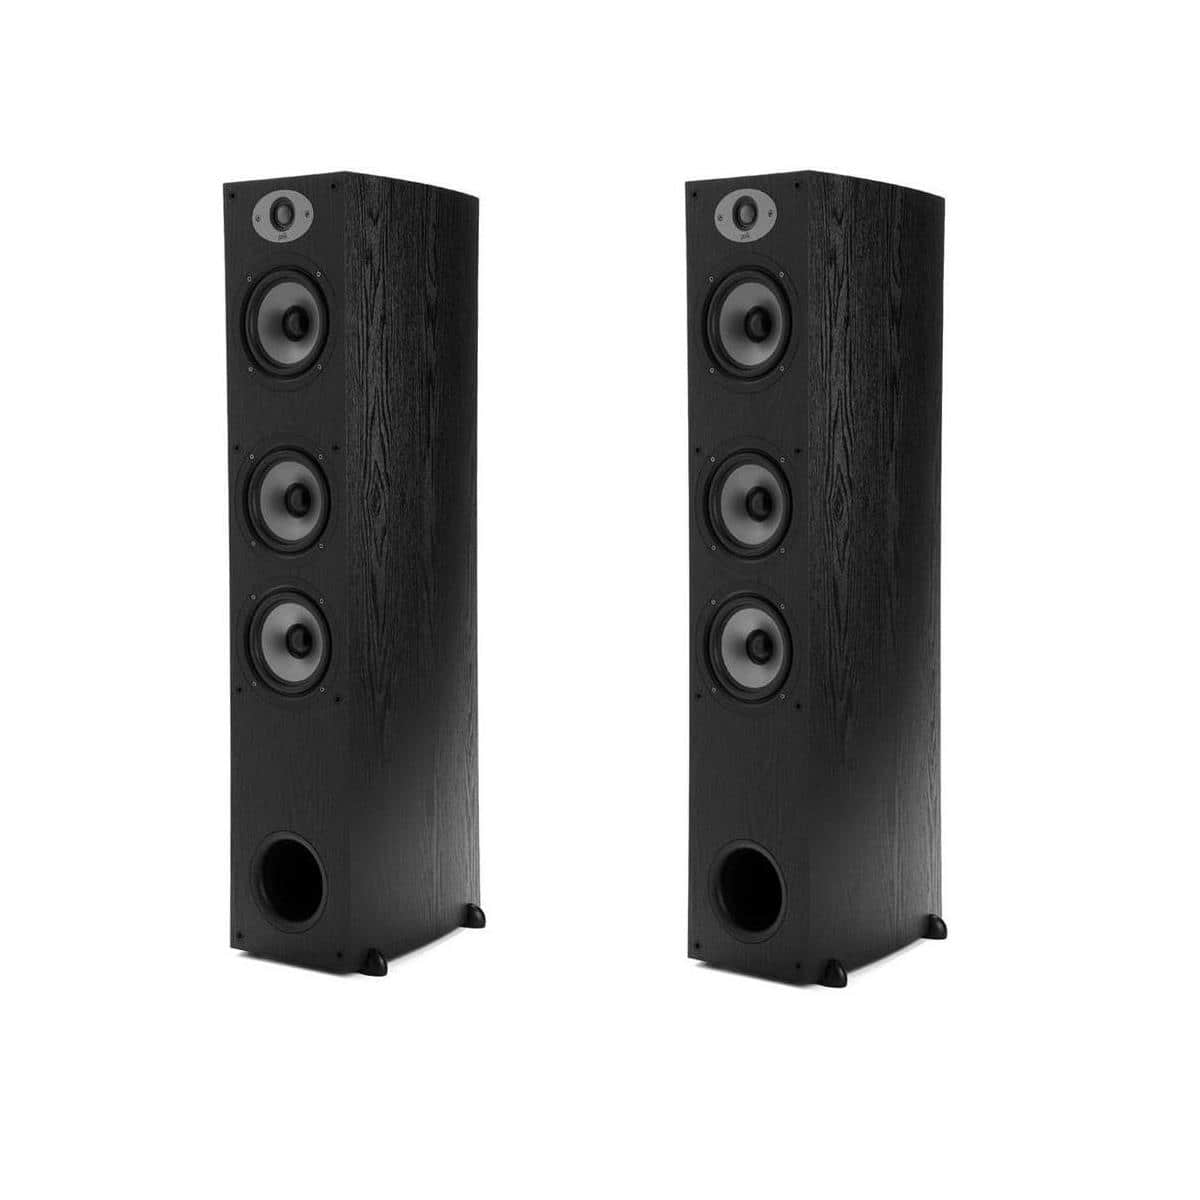 (pair) of Polk Audio TSx440T Floorstanding Speakers $350 + free shipping